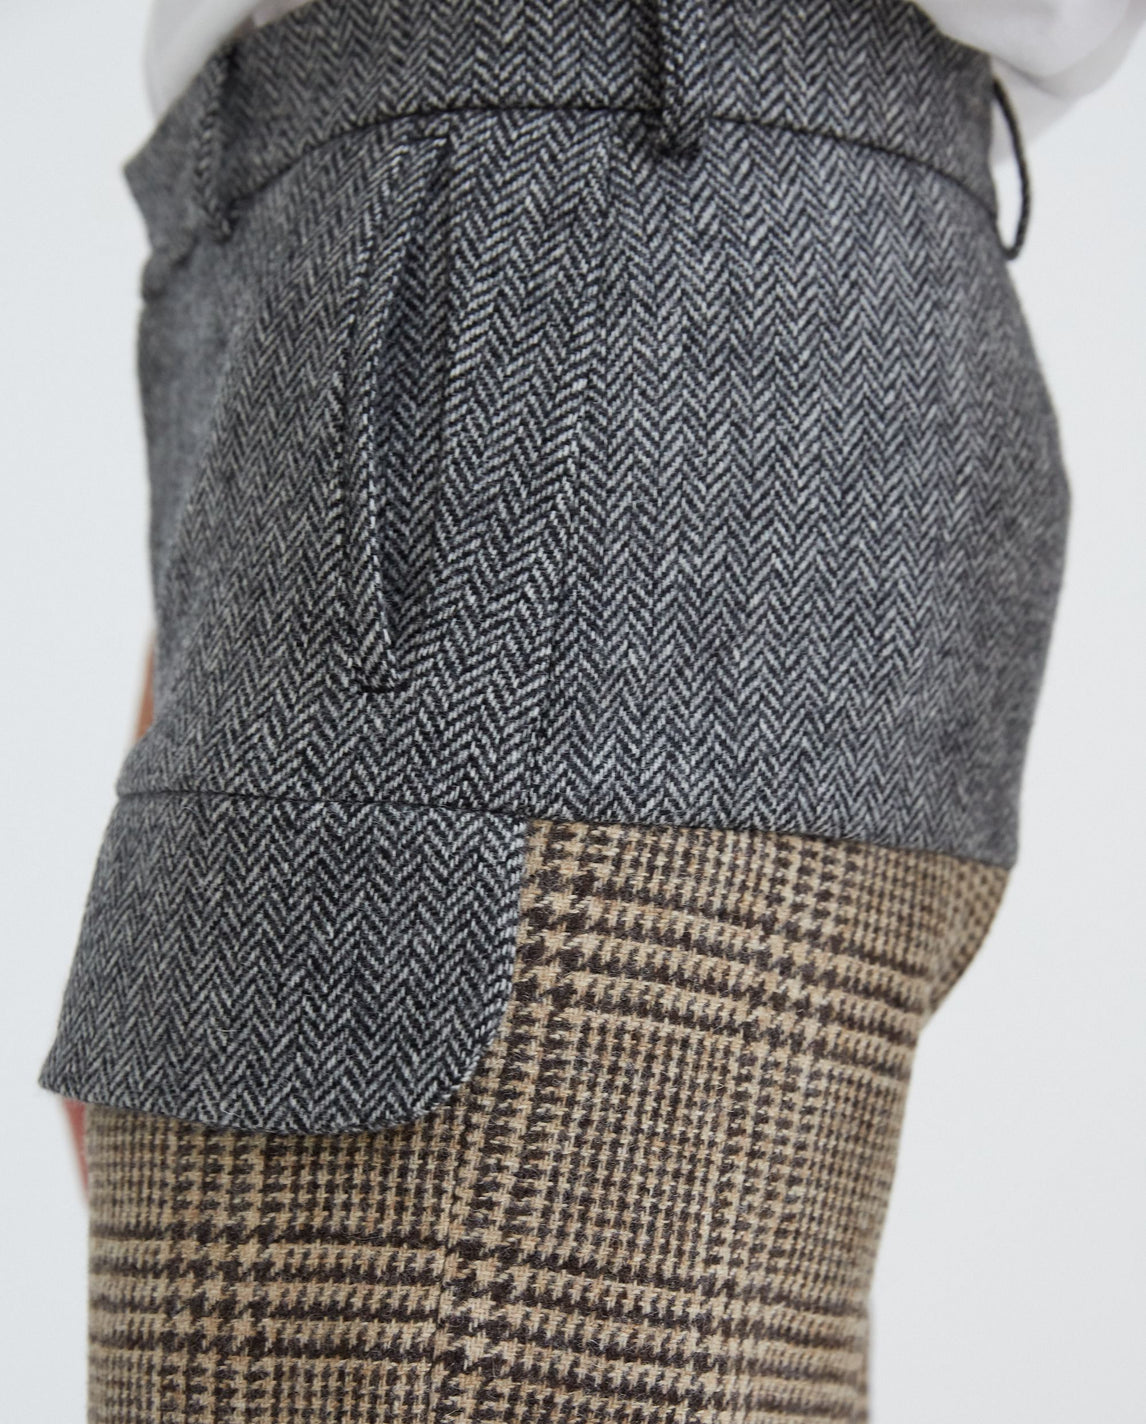 Tailored Trouser - Brown/Grey UNISEX STEFAN COOKE